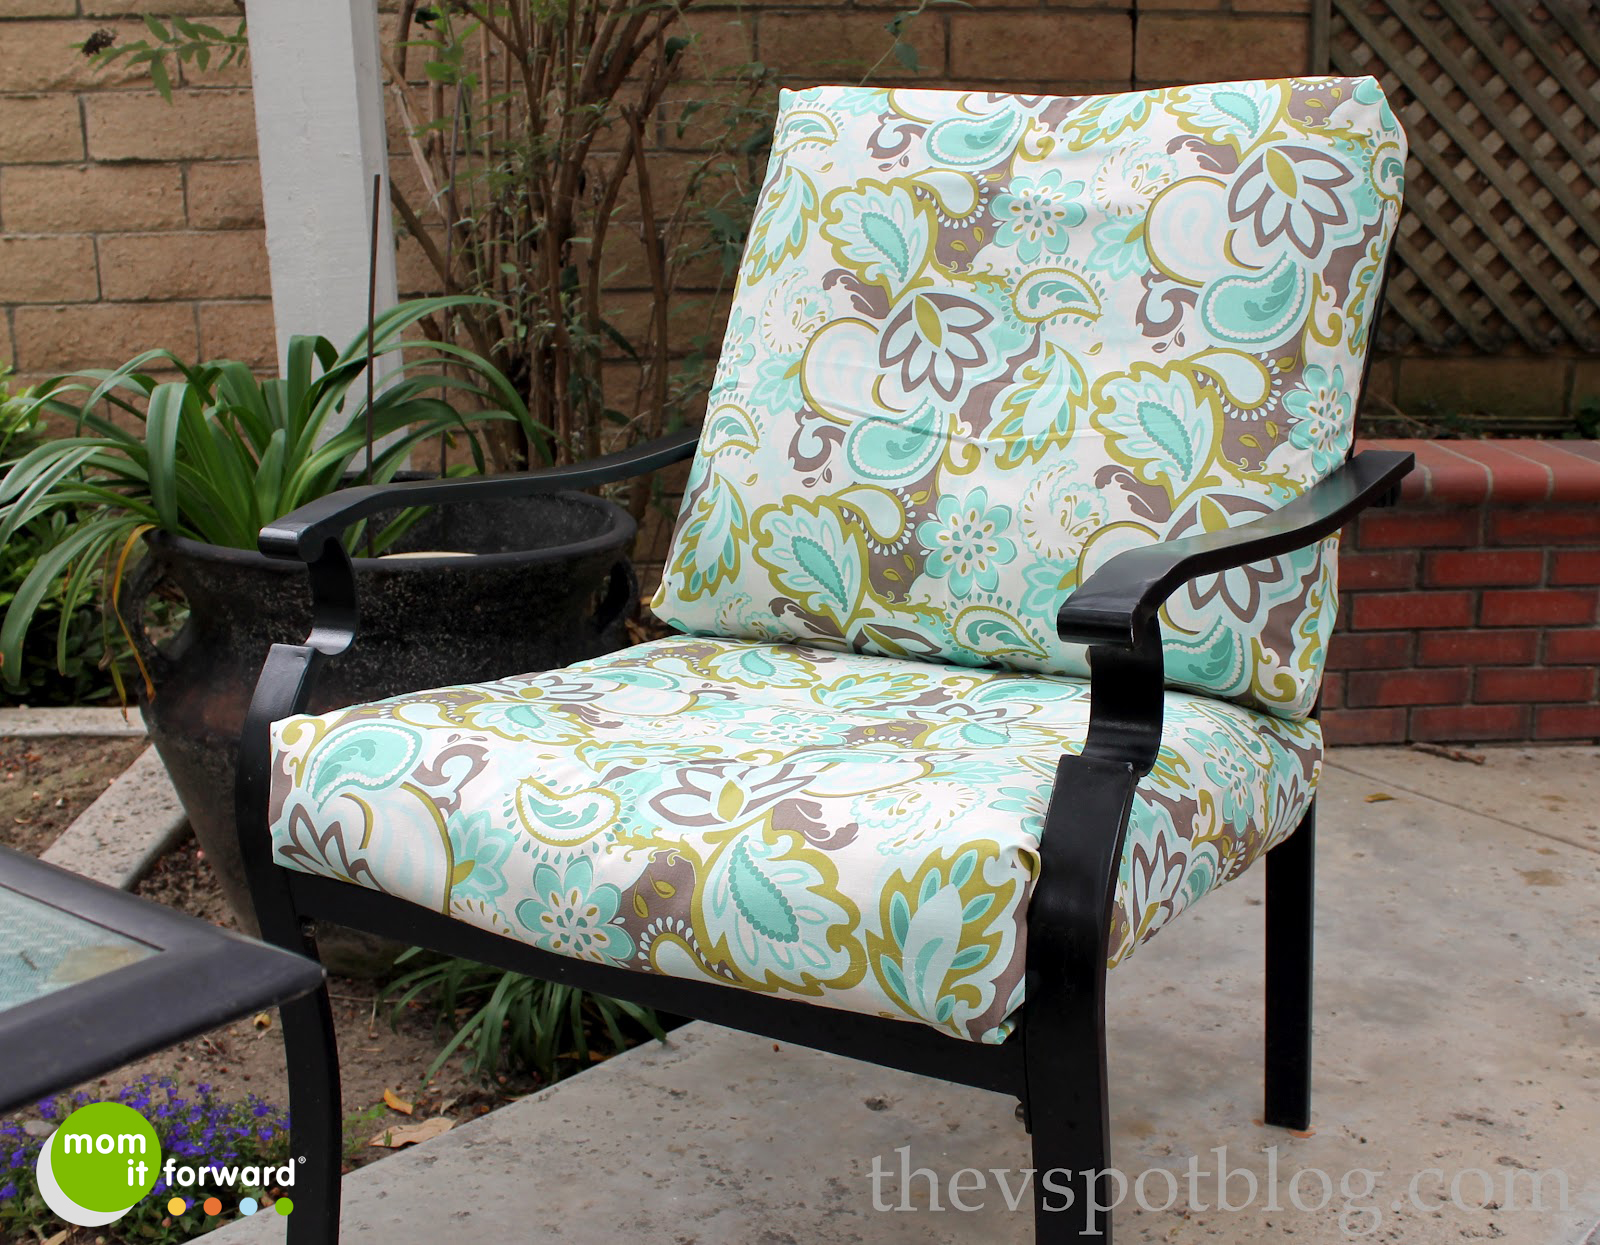 DIY: How To Recover Outdoor Furniture With A Glue Gun